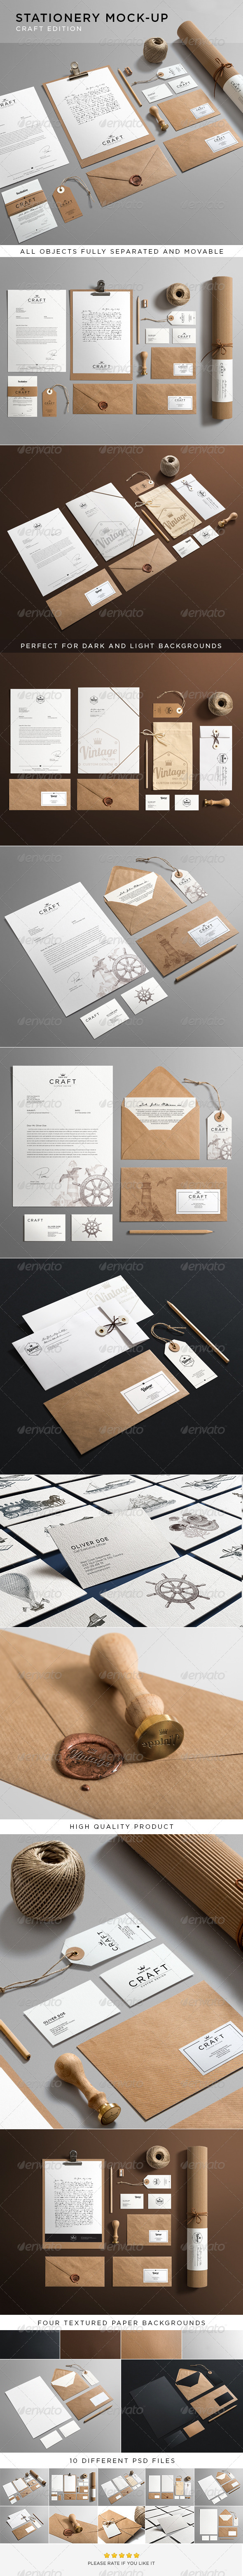 GraphicRiver Stationery Branding Mock-Up 6281184